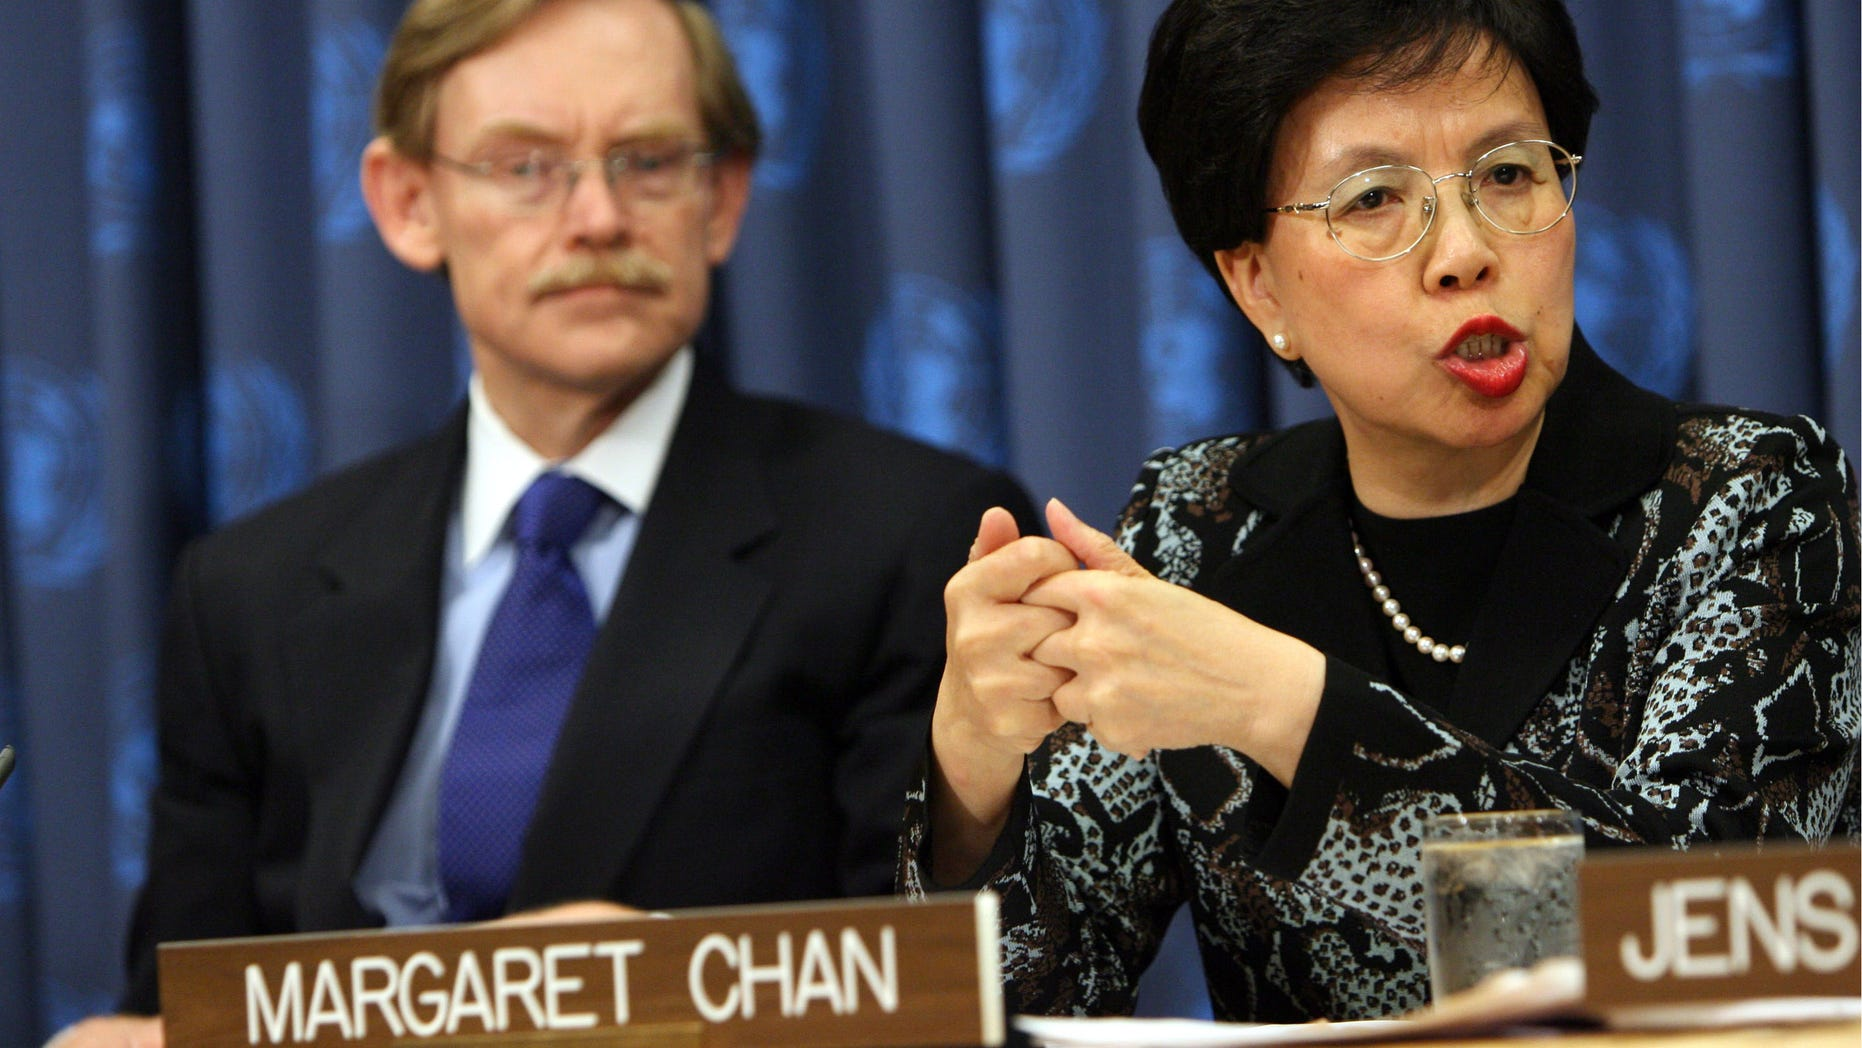 NEW YORK - SEPTEMBER 25:  Director-General of the World Health Organization Margaret Chan speaks during a press conference to launch a plan aimed at saving 10 million mothers and newborns in the poorest countries by 2015 at the 63rd annual United Nations General Assembly meeting September 25, 2008 at UN headquarters in New York City.  Leaders from around the world have descended on New York to discuss current political issues.  (Photo by Rick Gershon/Getty Images)